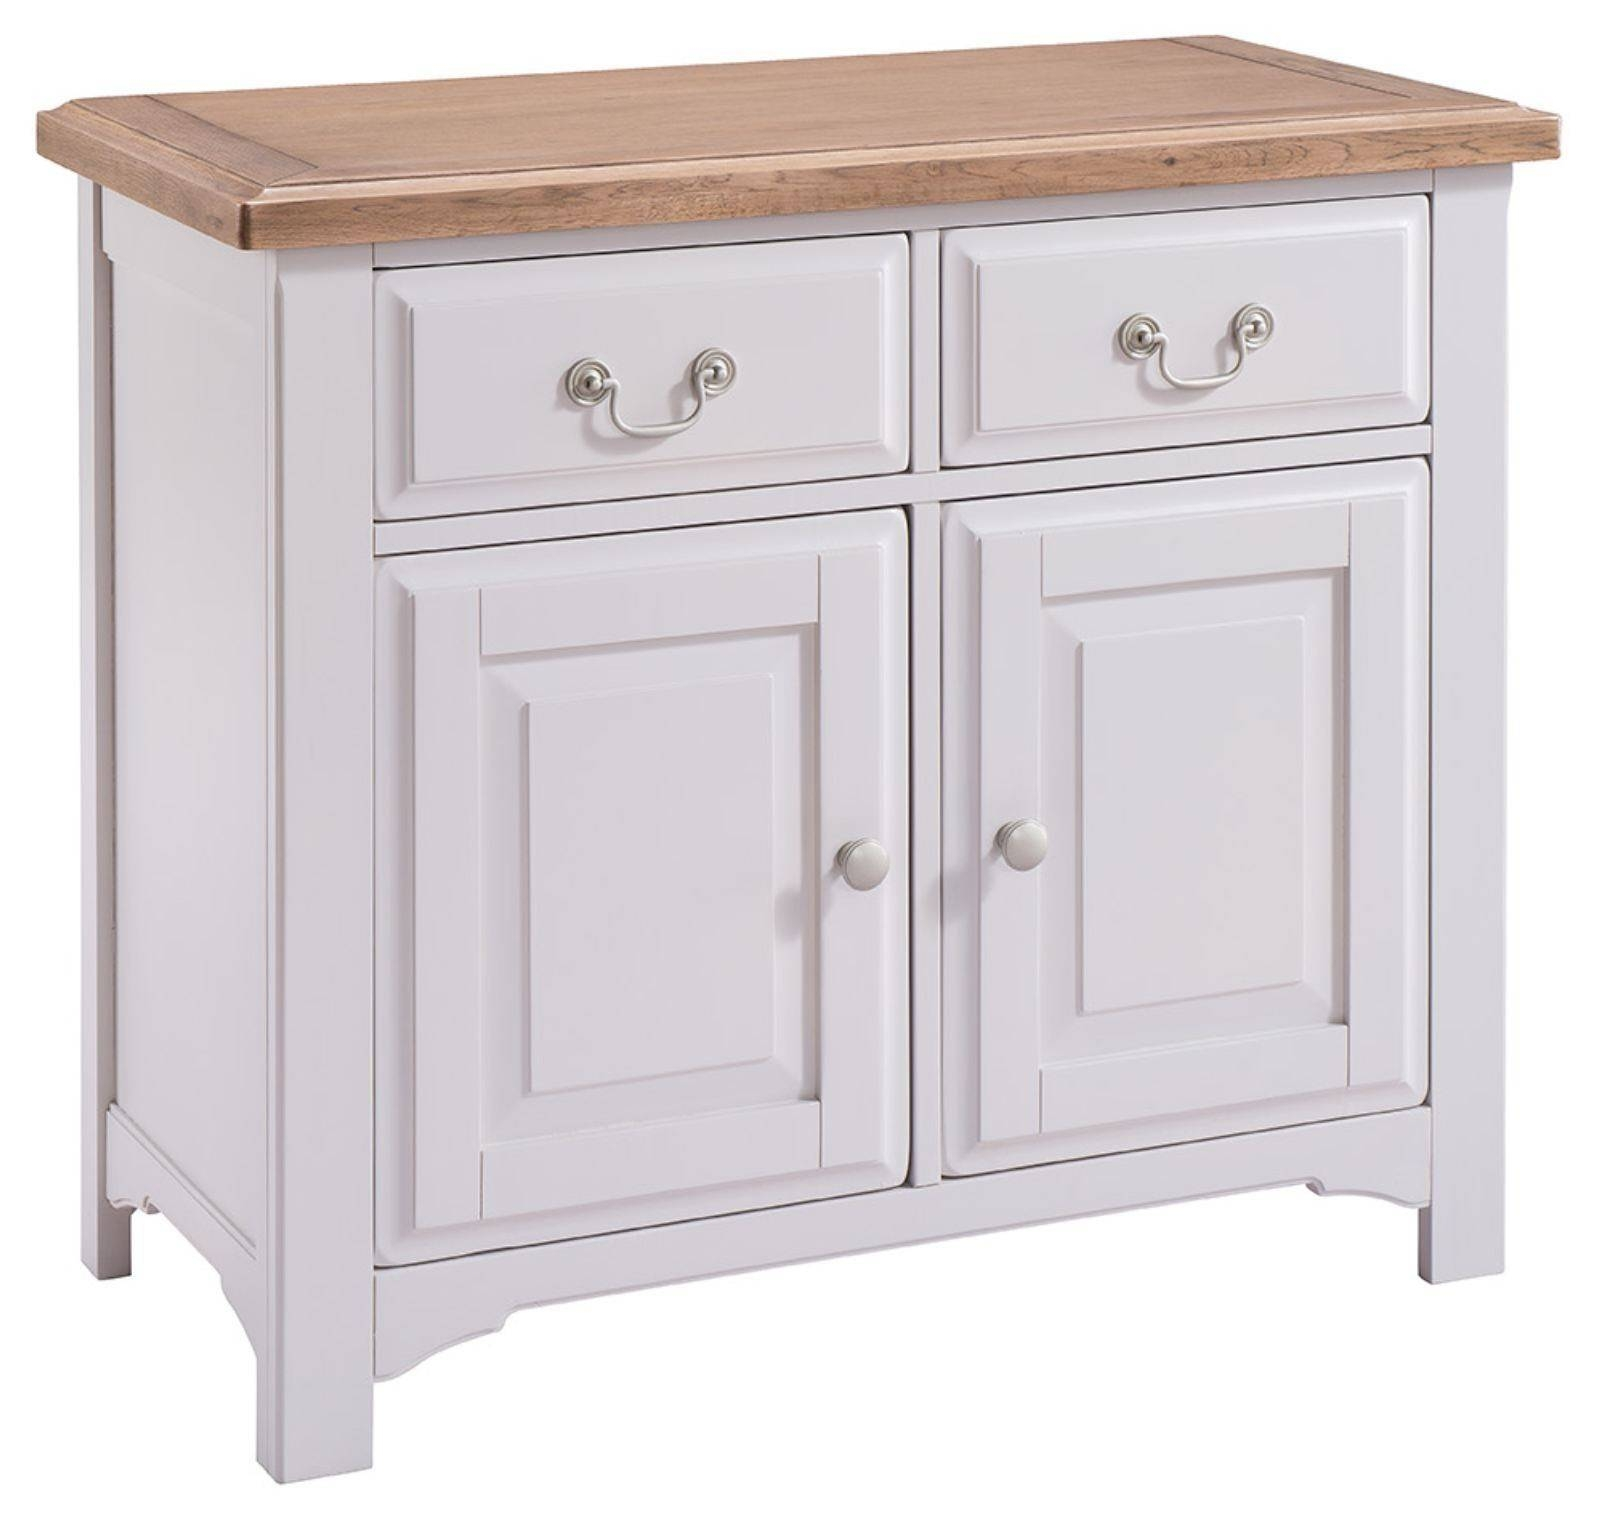 Hutch® – Buxton Light Grey Painted Small Sideboard Throughout Grey Painted Sideboards (View 5 of 15)